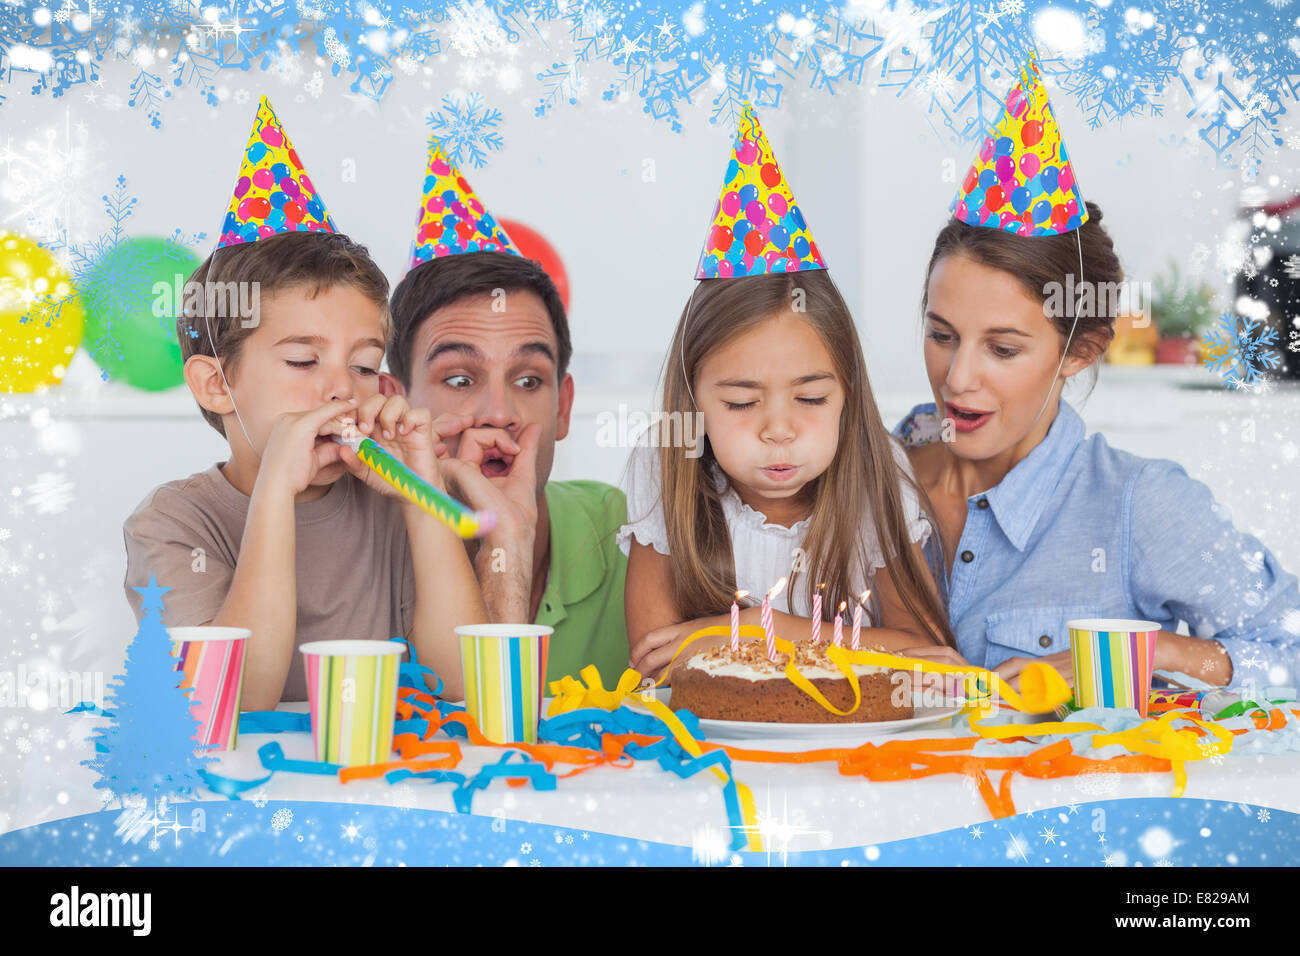 Little girl blowing her candles during her birthday party - Stock Image